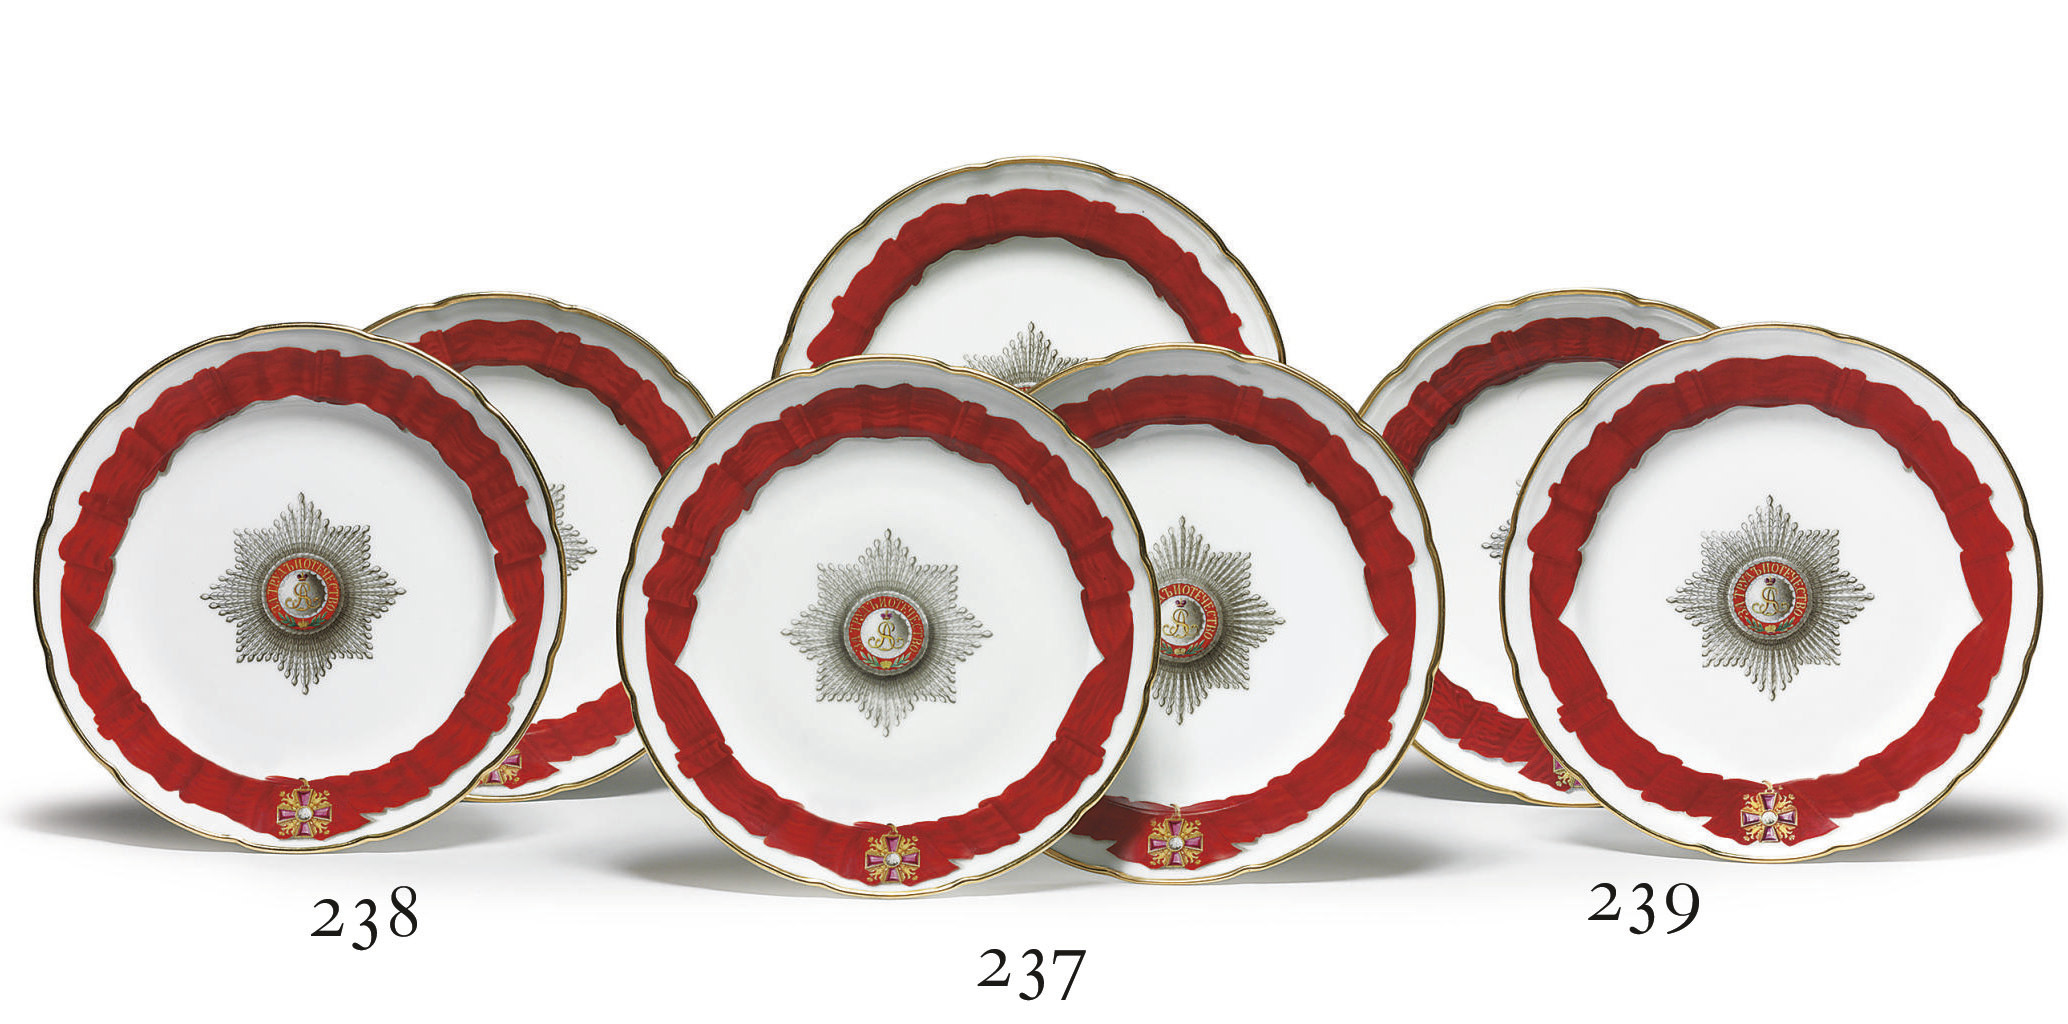 A Pair of Dinner Plates from t